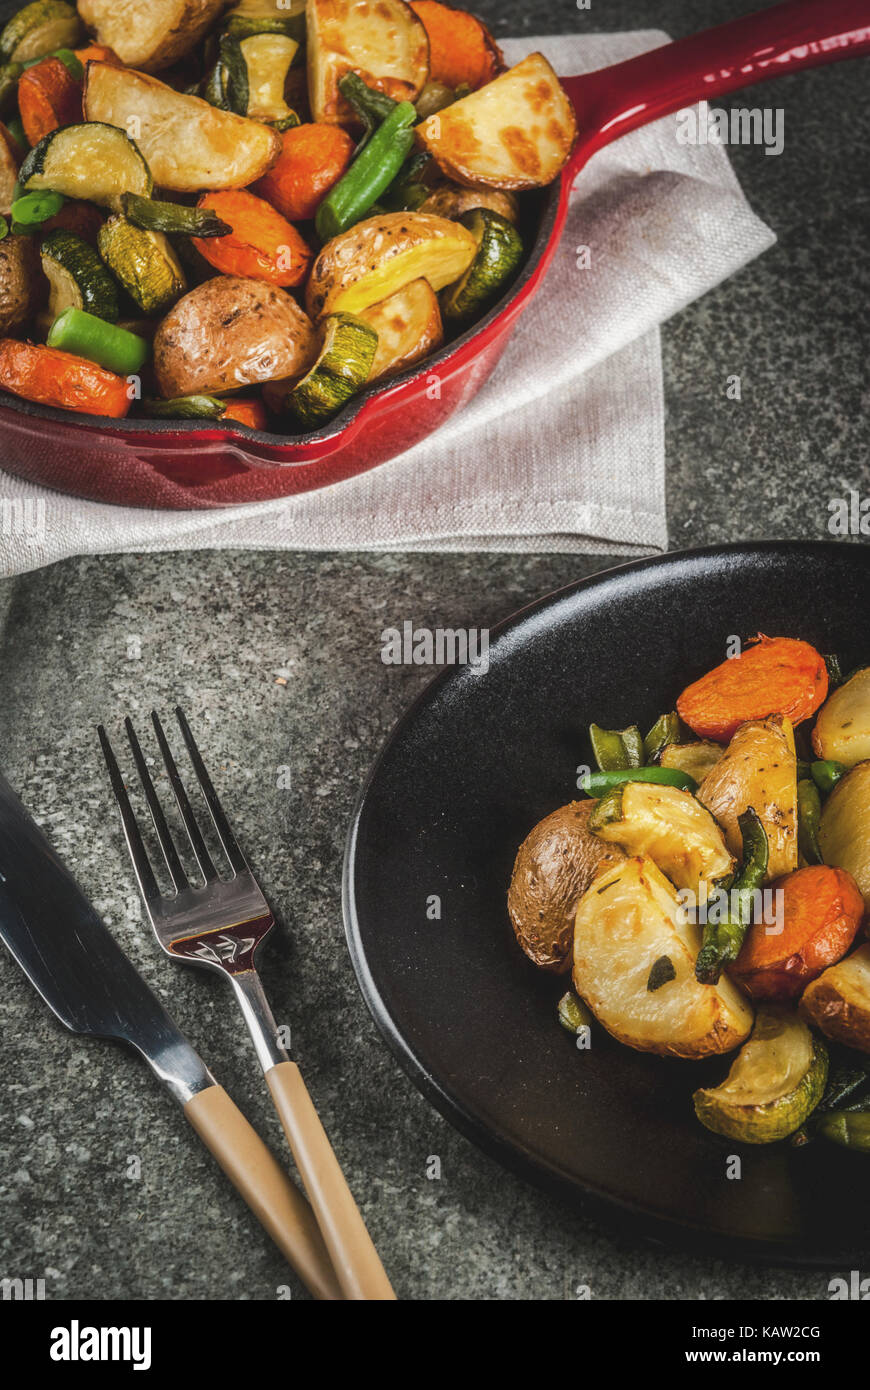 Plate and Skillet with  fried seasonal autumn vegetables (zucchini, potatoes, carrots, beans), on black stone table - Stock Image